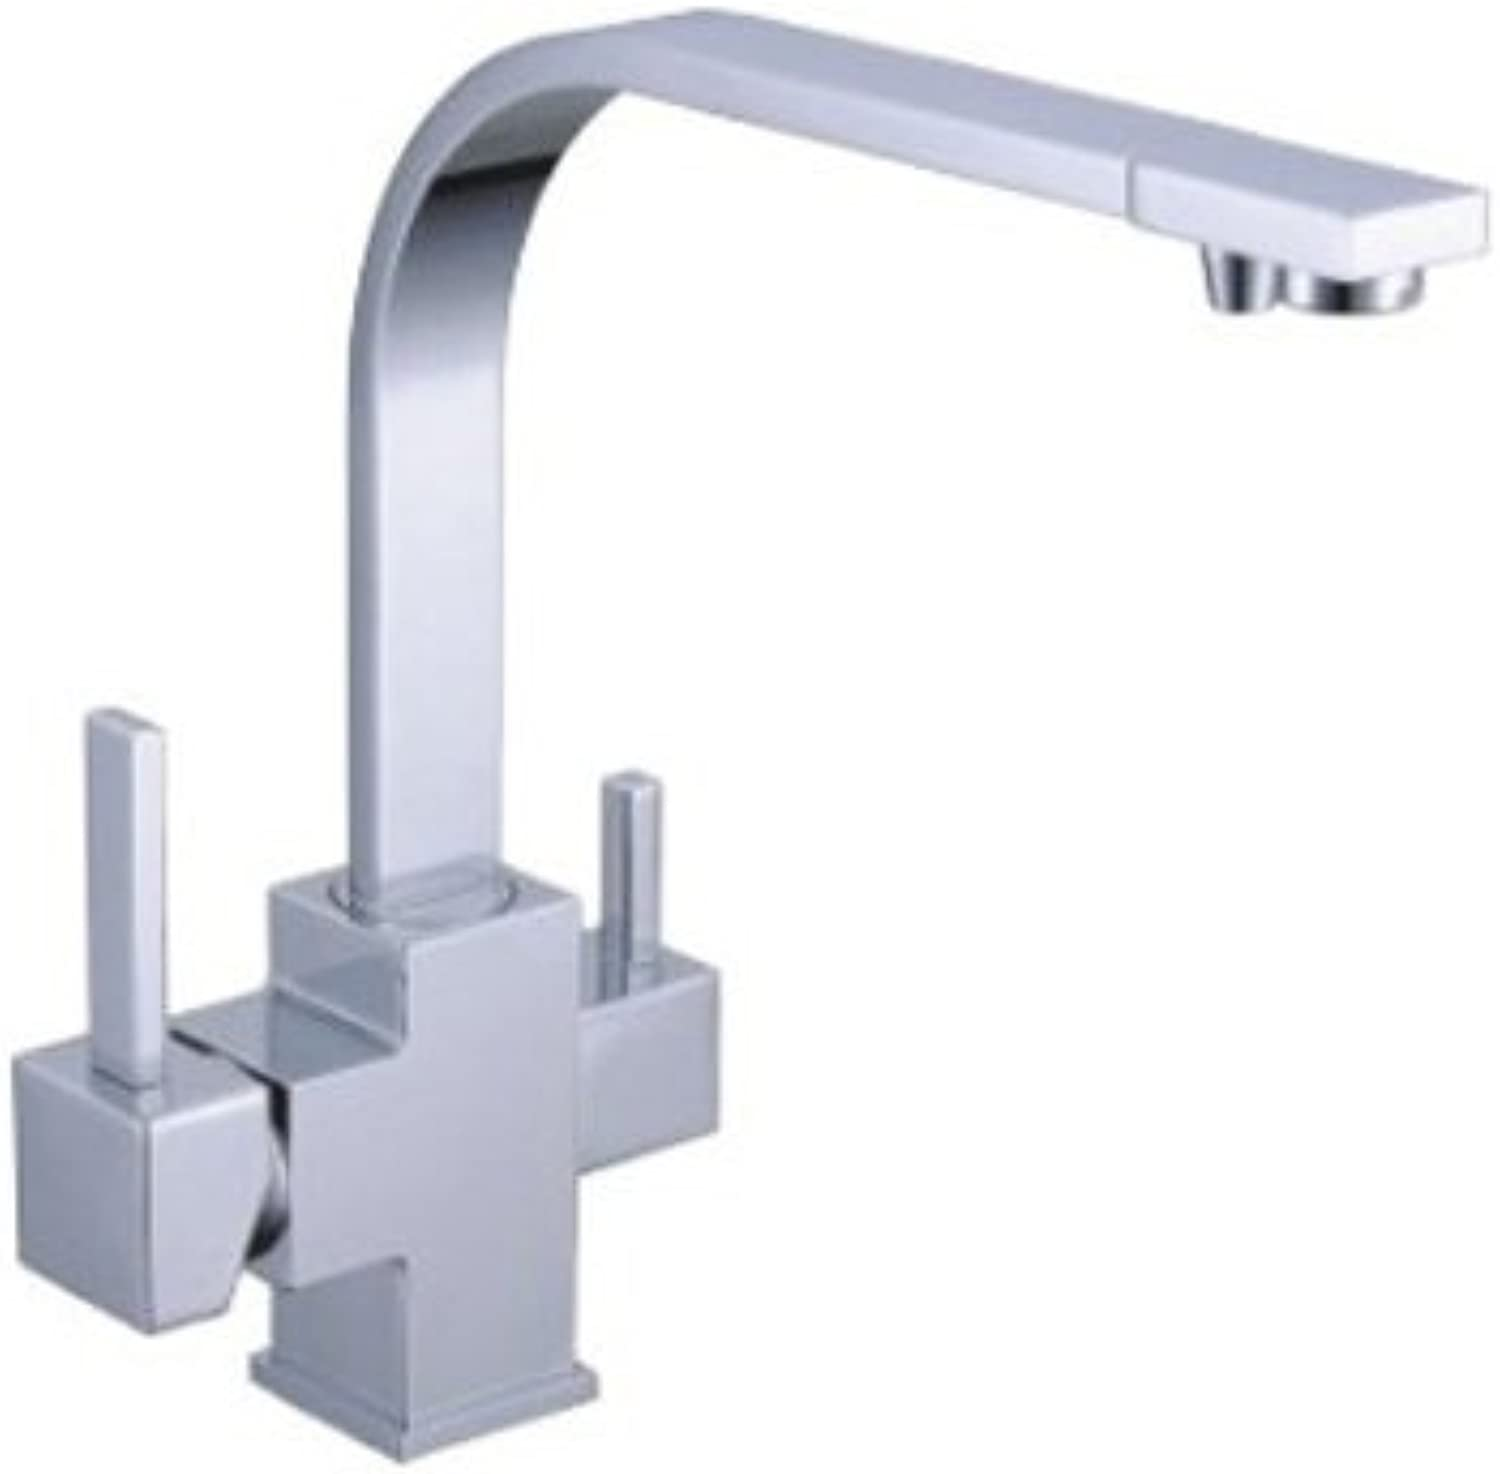 3 Way Tap ESCLUSIVO L-Auslauf White for Hot and Cold Filtered Water with AN elegant and stylish addition to your Wasserfilter. Suitable for all water filters